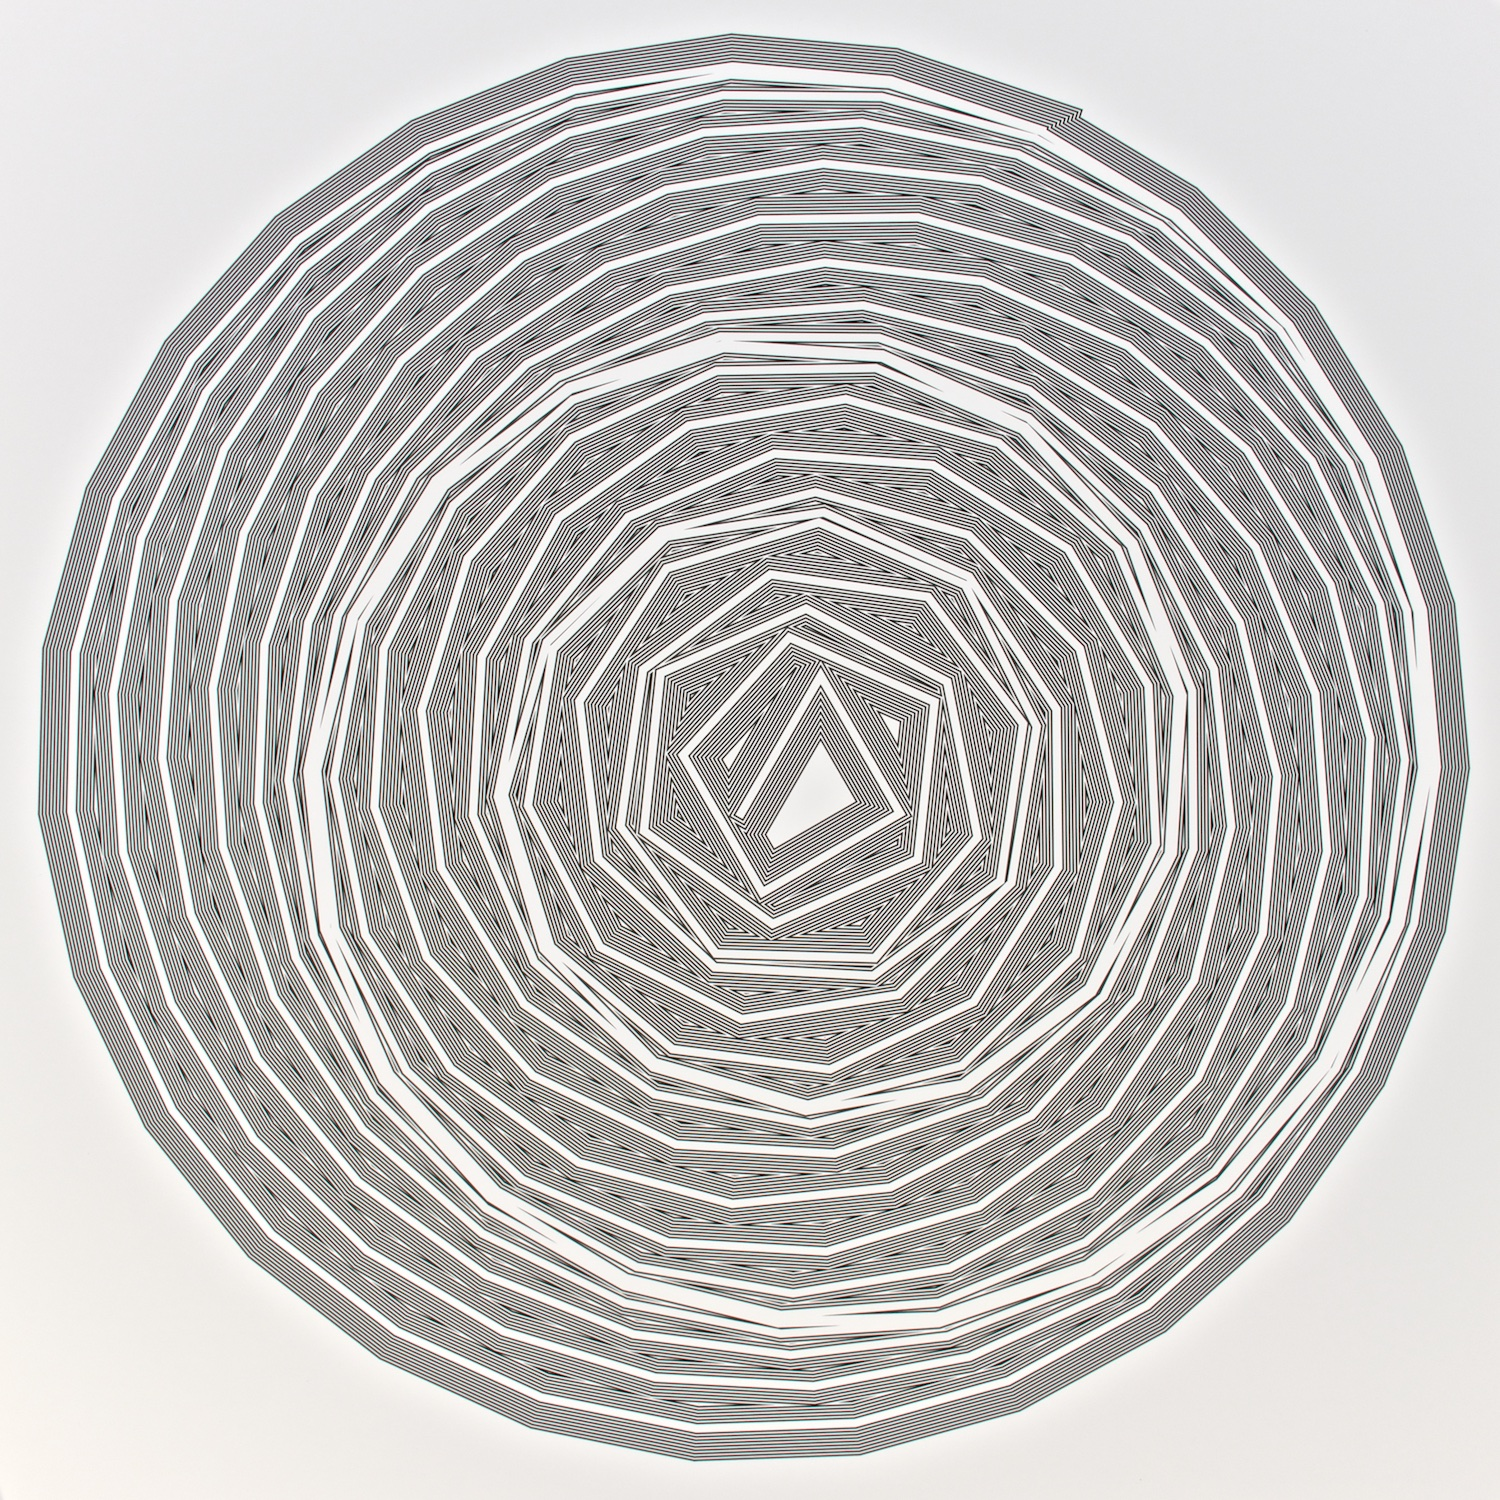 """Metagonal Variation 16ca ~27~ Central White Line Over Composite Black and White Line , 2013    Digital drawing, inkjet pigments    Art : 22.25"""" x 22.25"""" (56x56 cm)    Paper : 25"""" x 24"""" Epson UltraSmooth Fine Art Paper"""